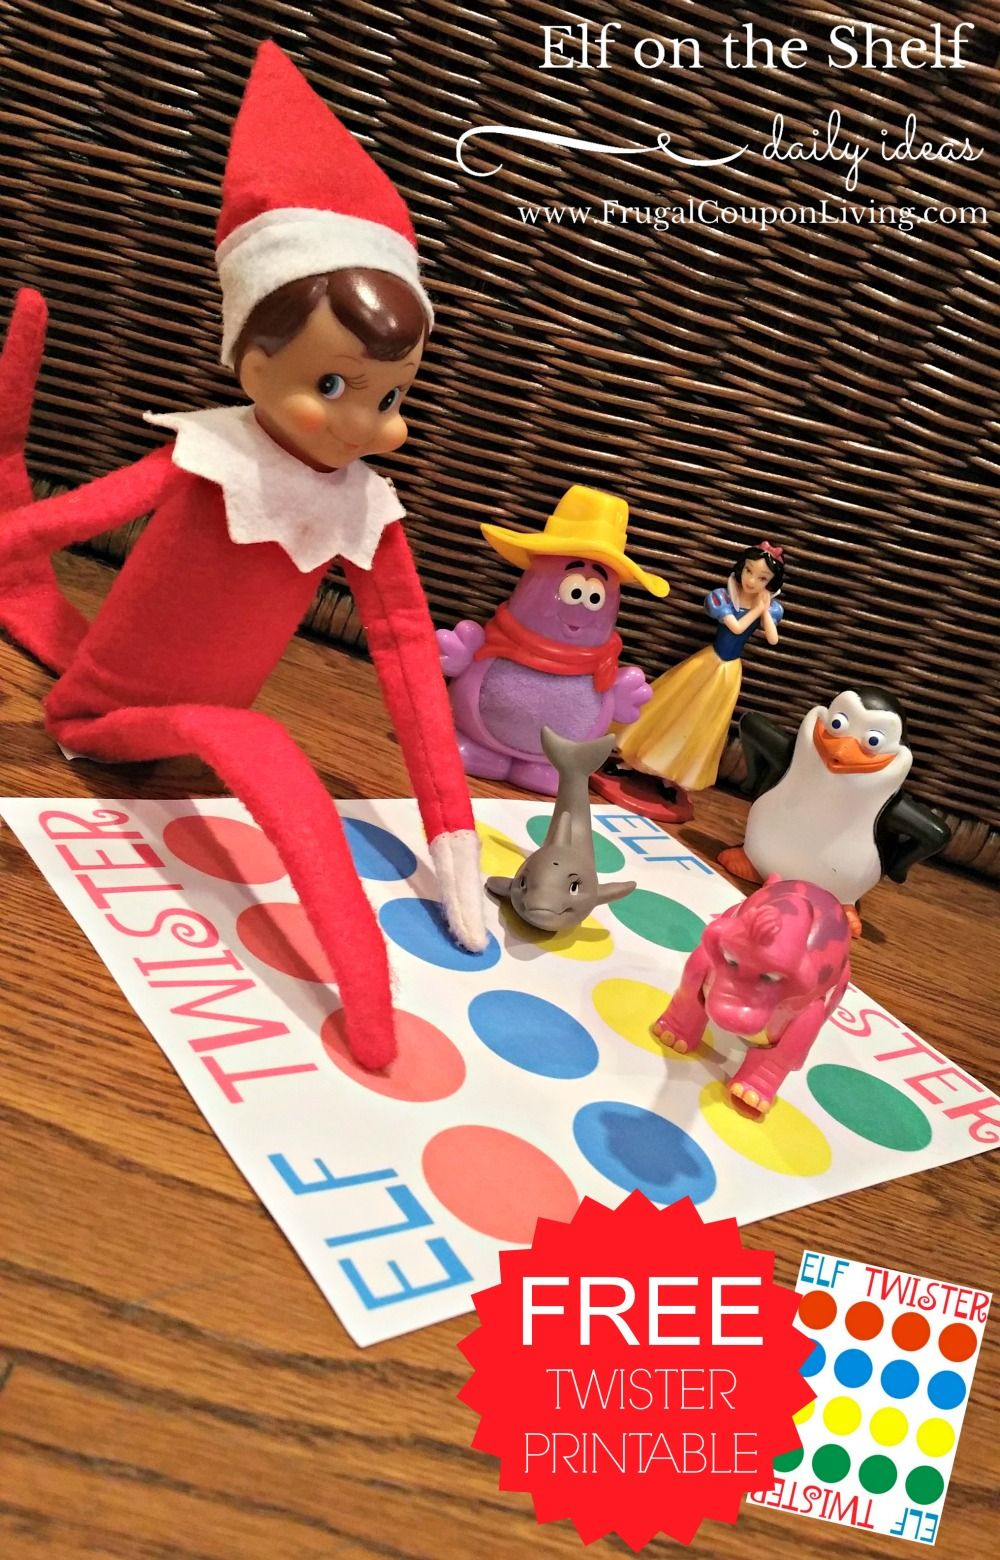 Elf On The Shelf Ideas | Elf On The Shelf | Pinterest | Elf On The - Elf On The Shelf Free Printable Ideas